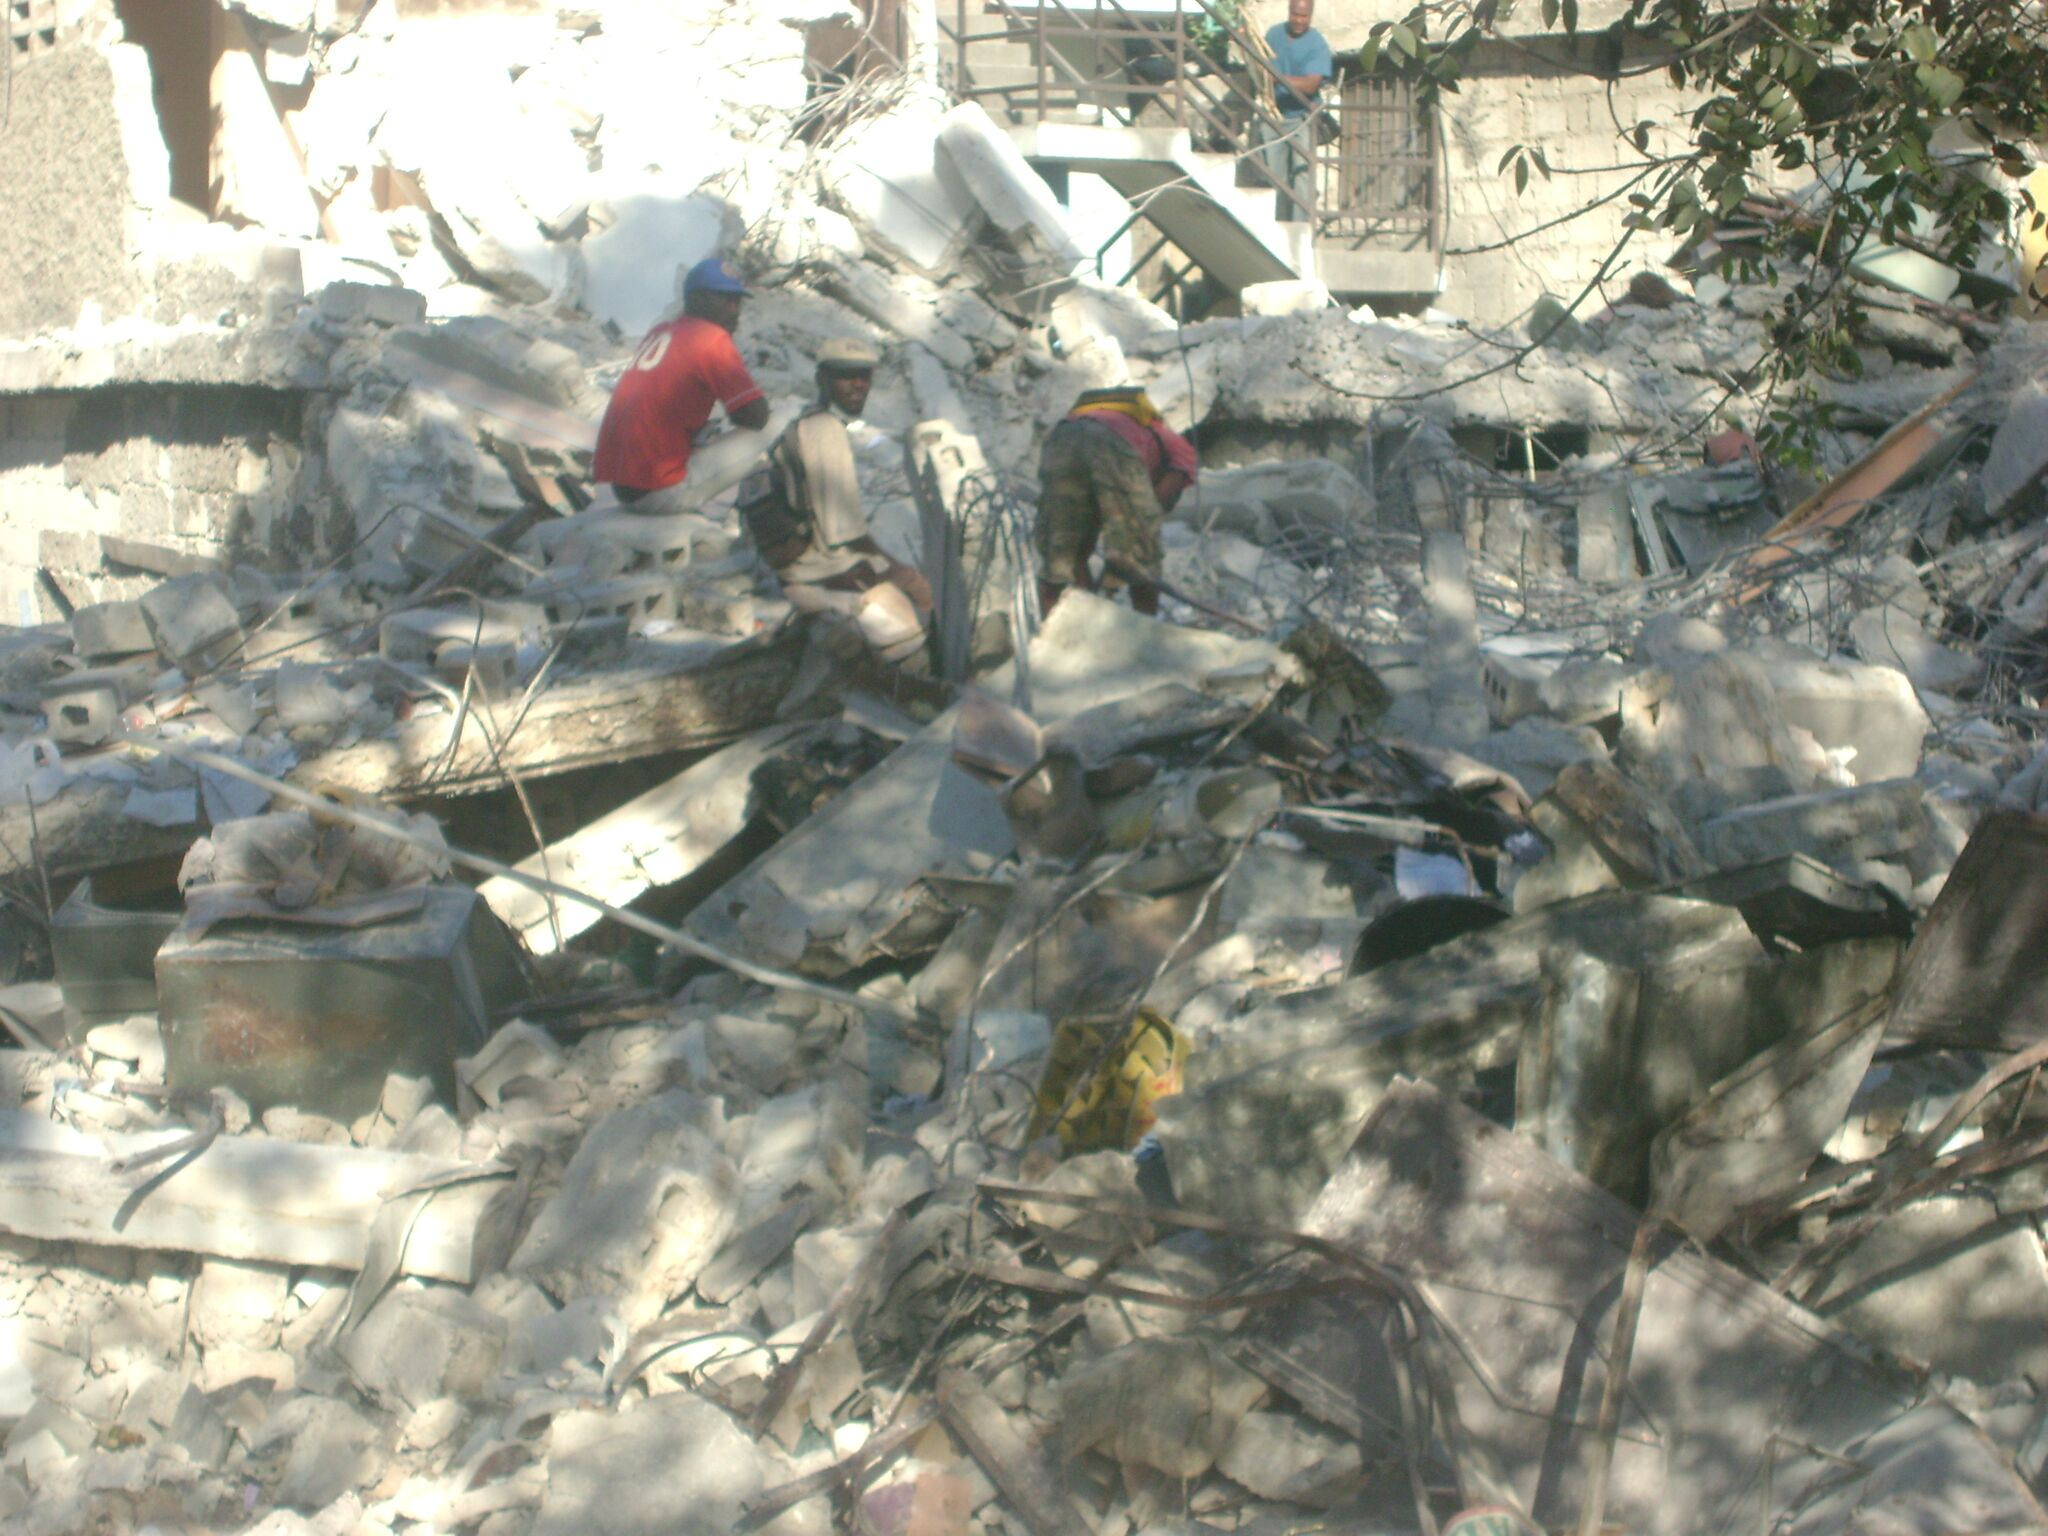 Volunteers and local officials search for survivors in the rubble after the quake in Port au Prince.